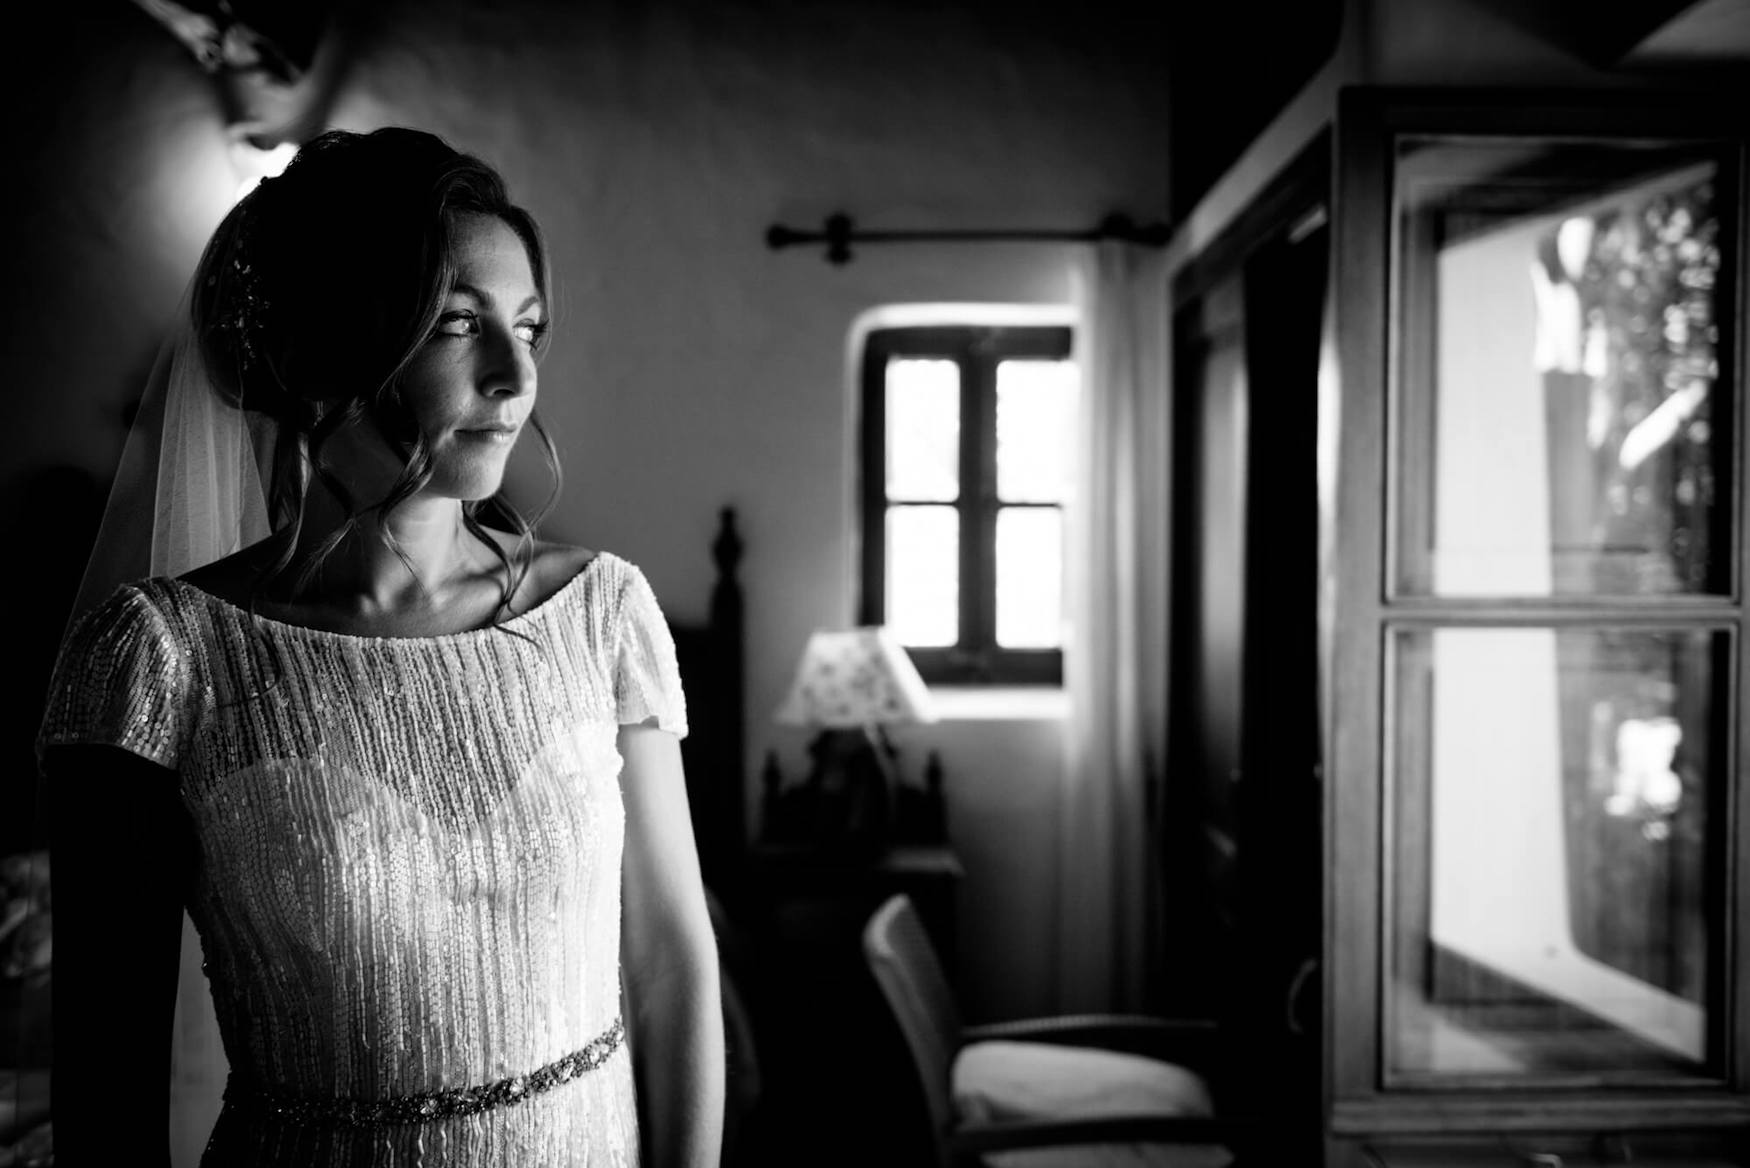 bride getting ready black white photo one side lighting